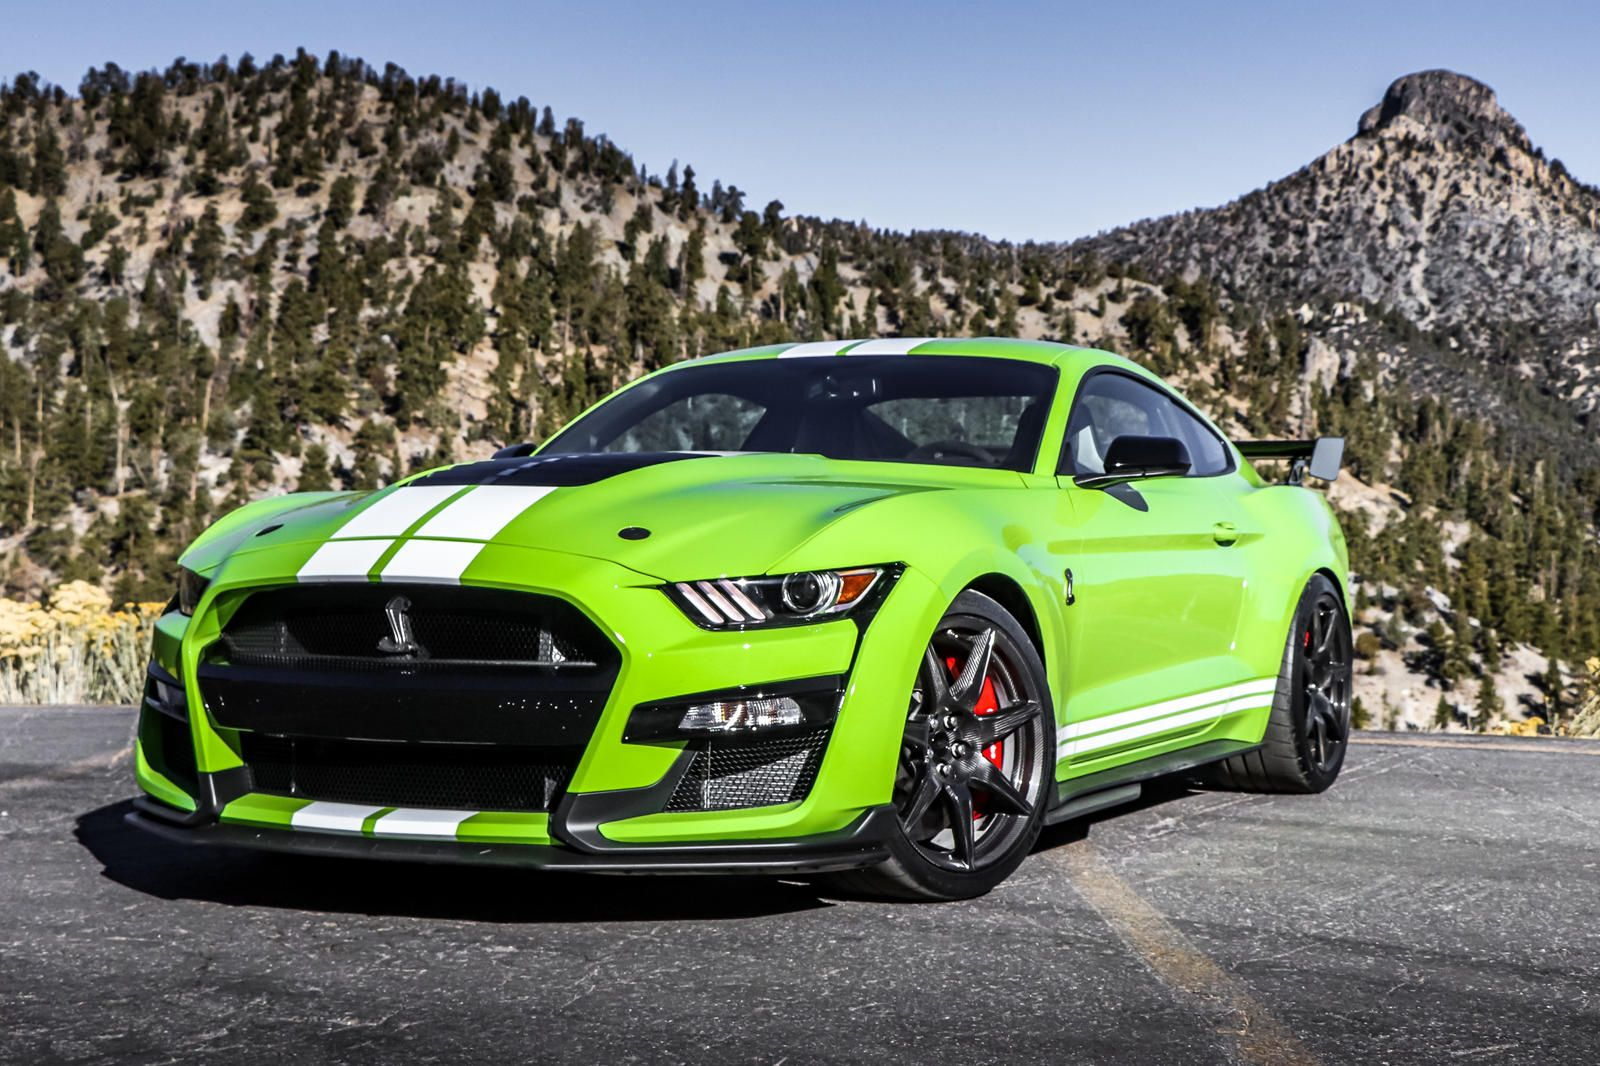 2020 Ford Mustang Shelby Gt500 Review Trims Specs And Price Carbuzz Mustang Shelby Ford Mustang Shelby Gt500 Ford Mustang Shelby